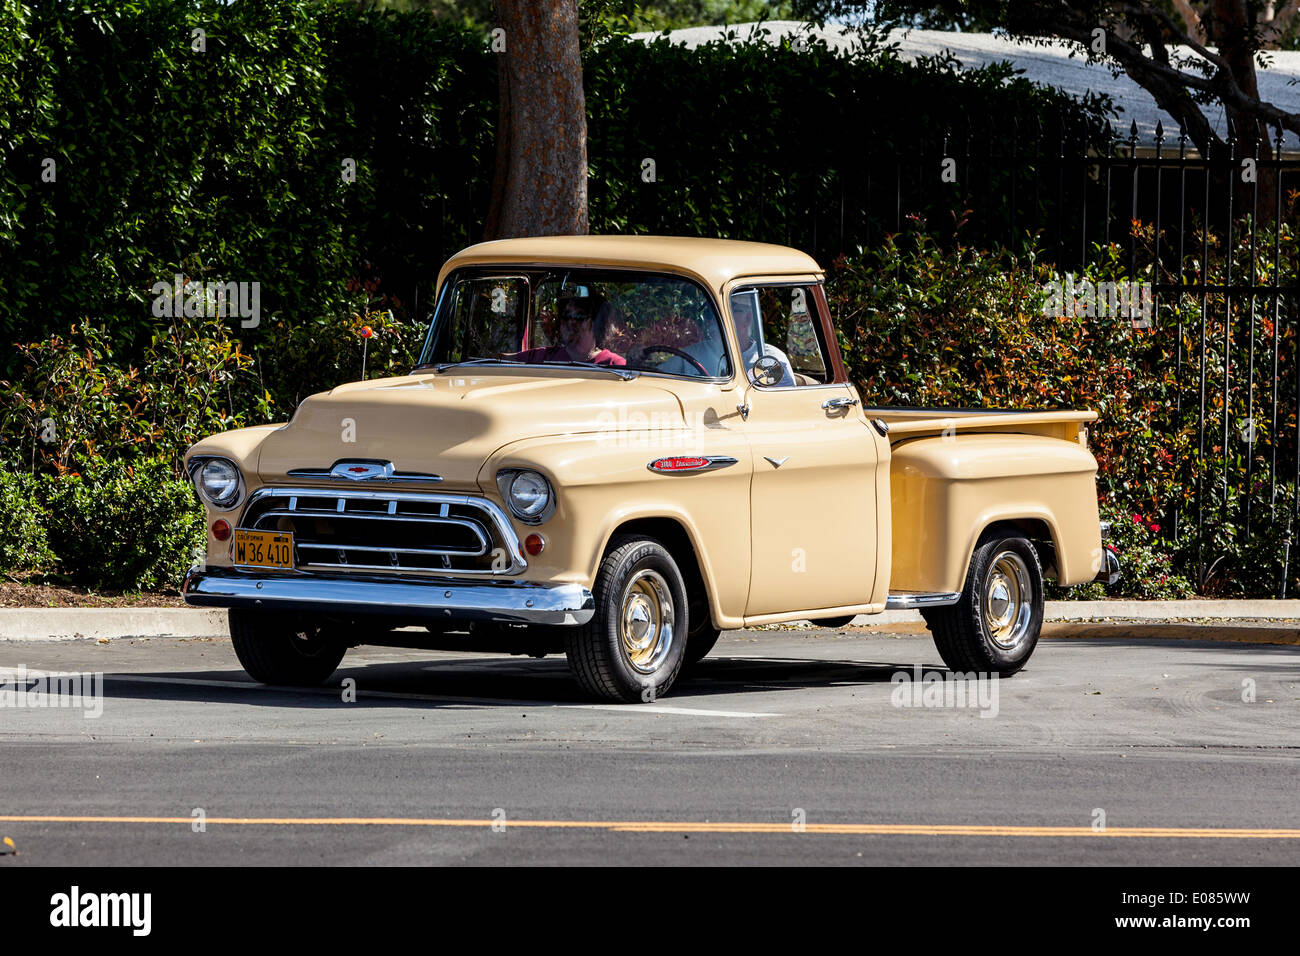 a 1957 chevy truck stepside stock photo 69021733 alamy